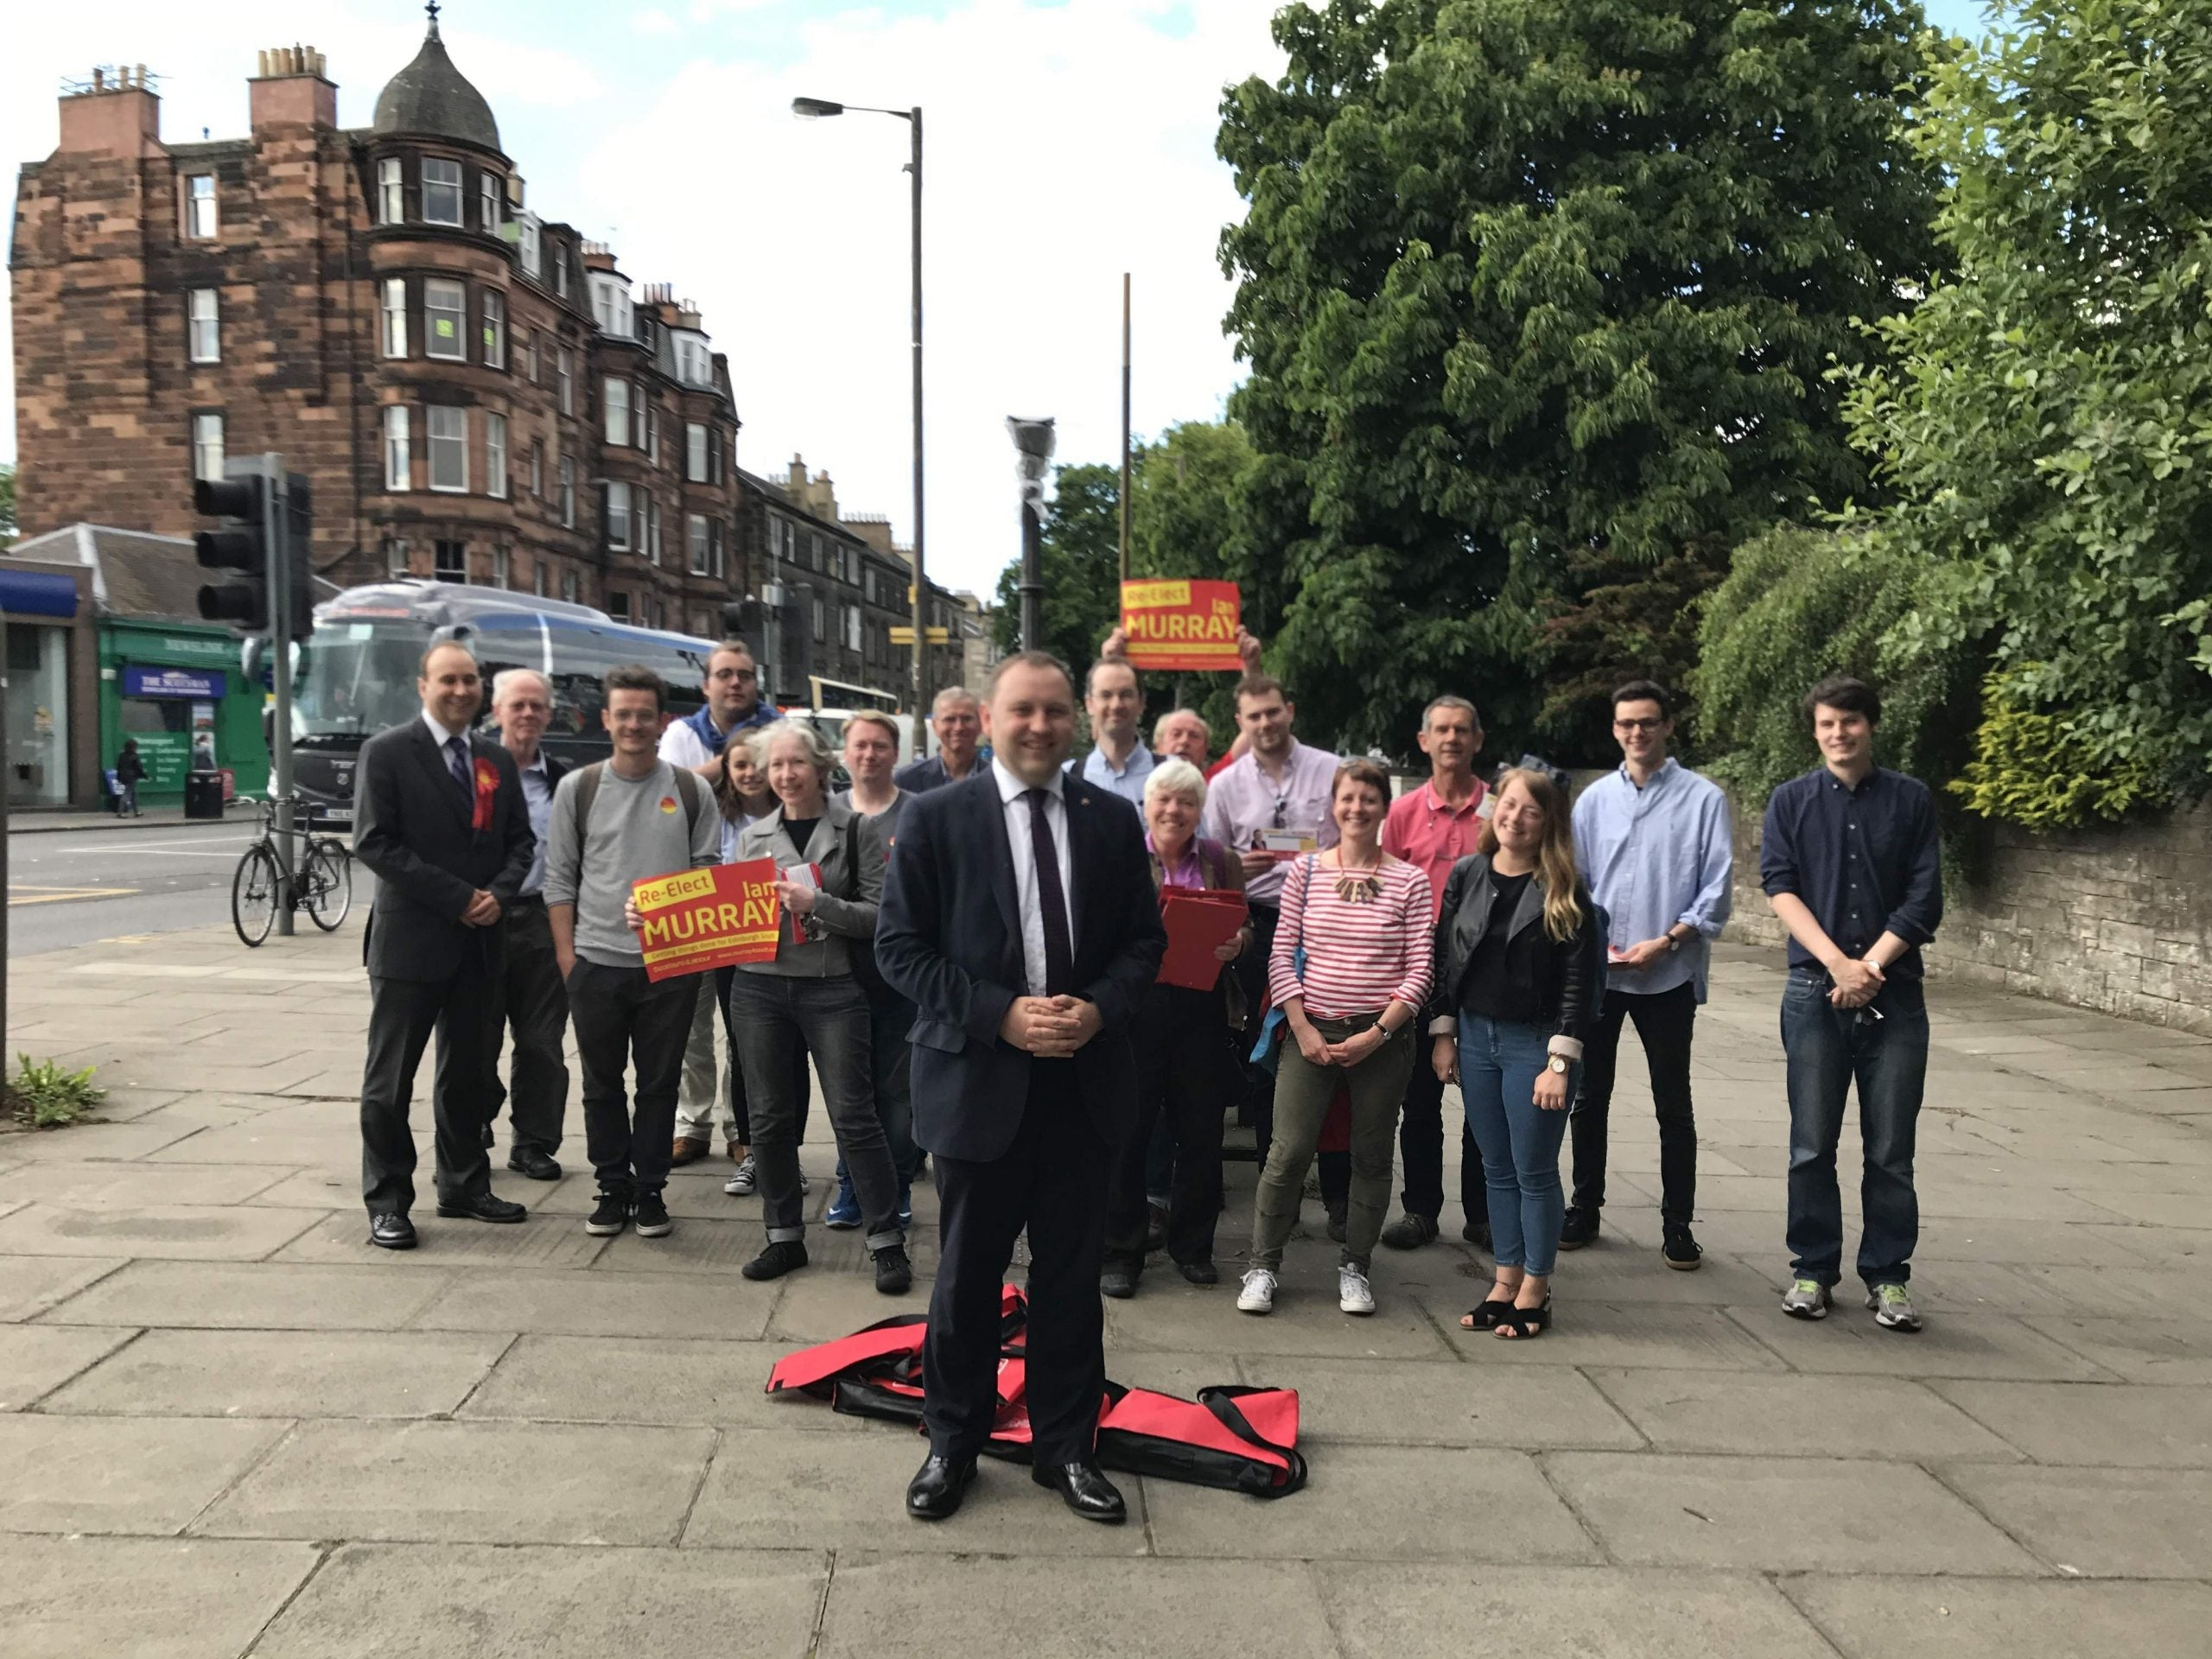 Edinburgh South voters rejected Theresa May's manifesto of misery - here's why